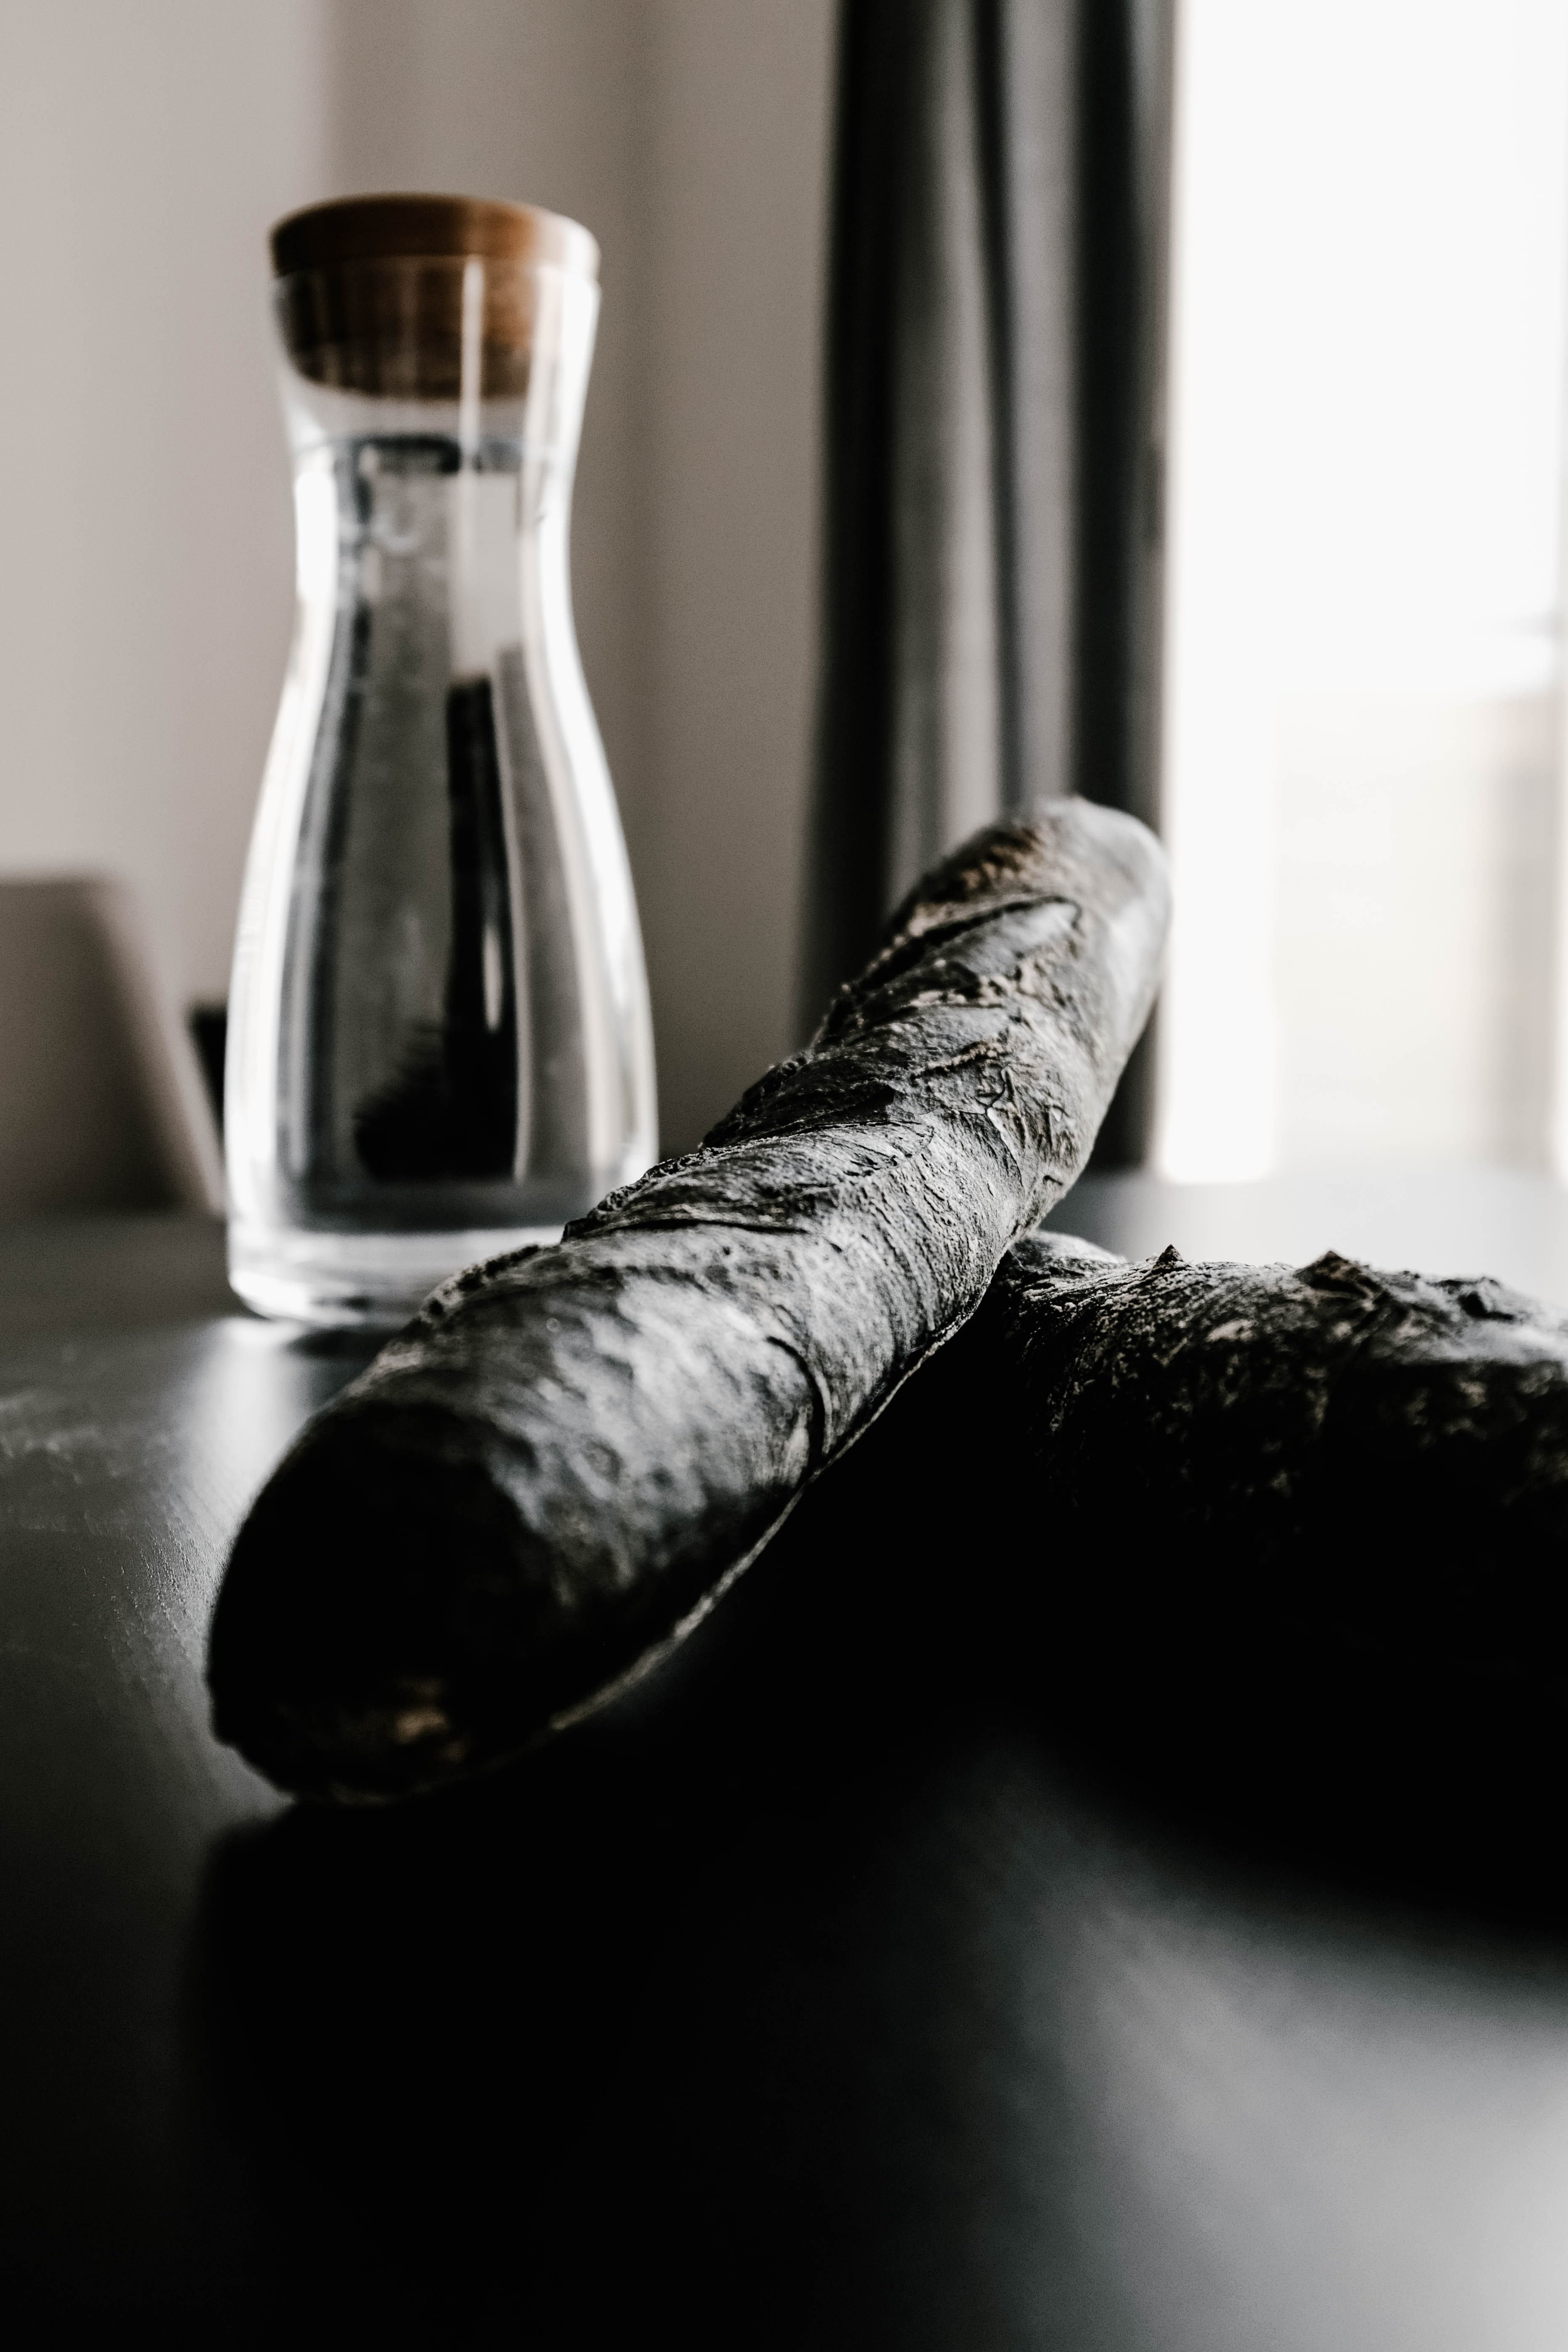 two black cigars near bottle